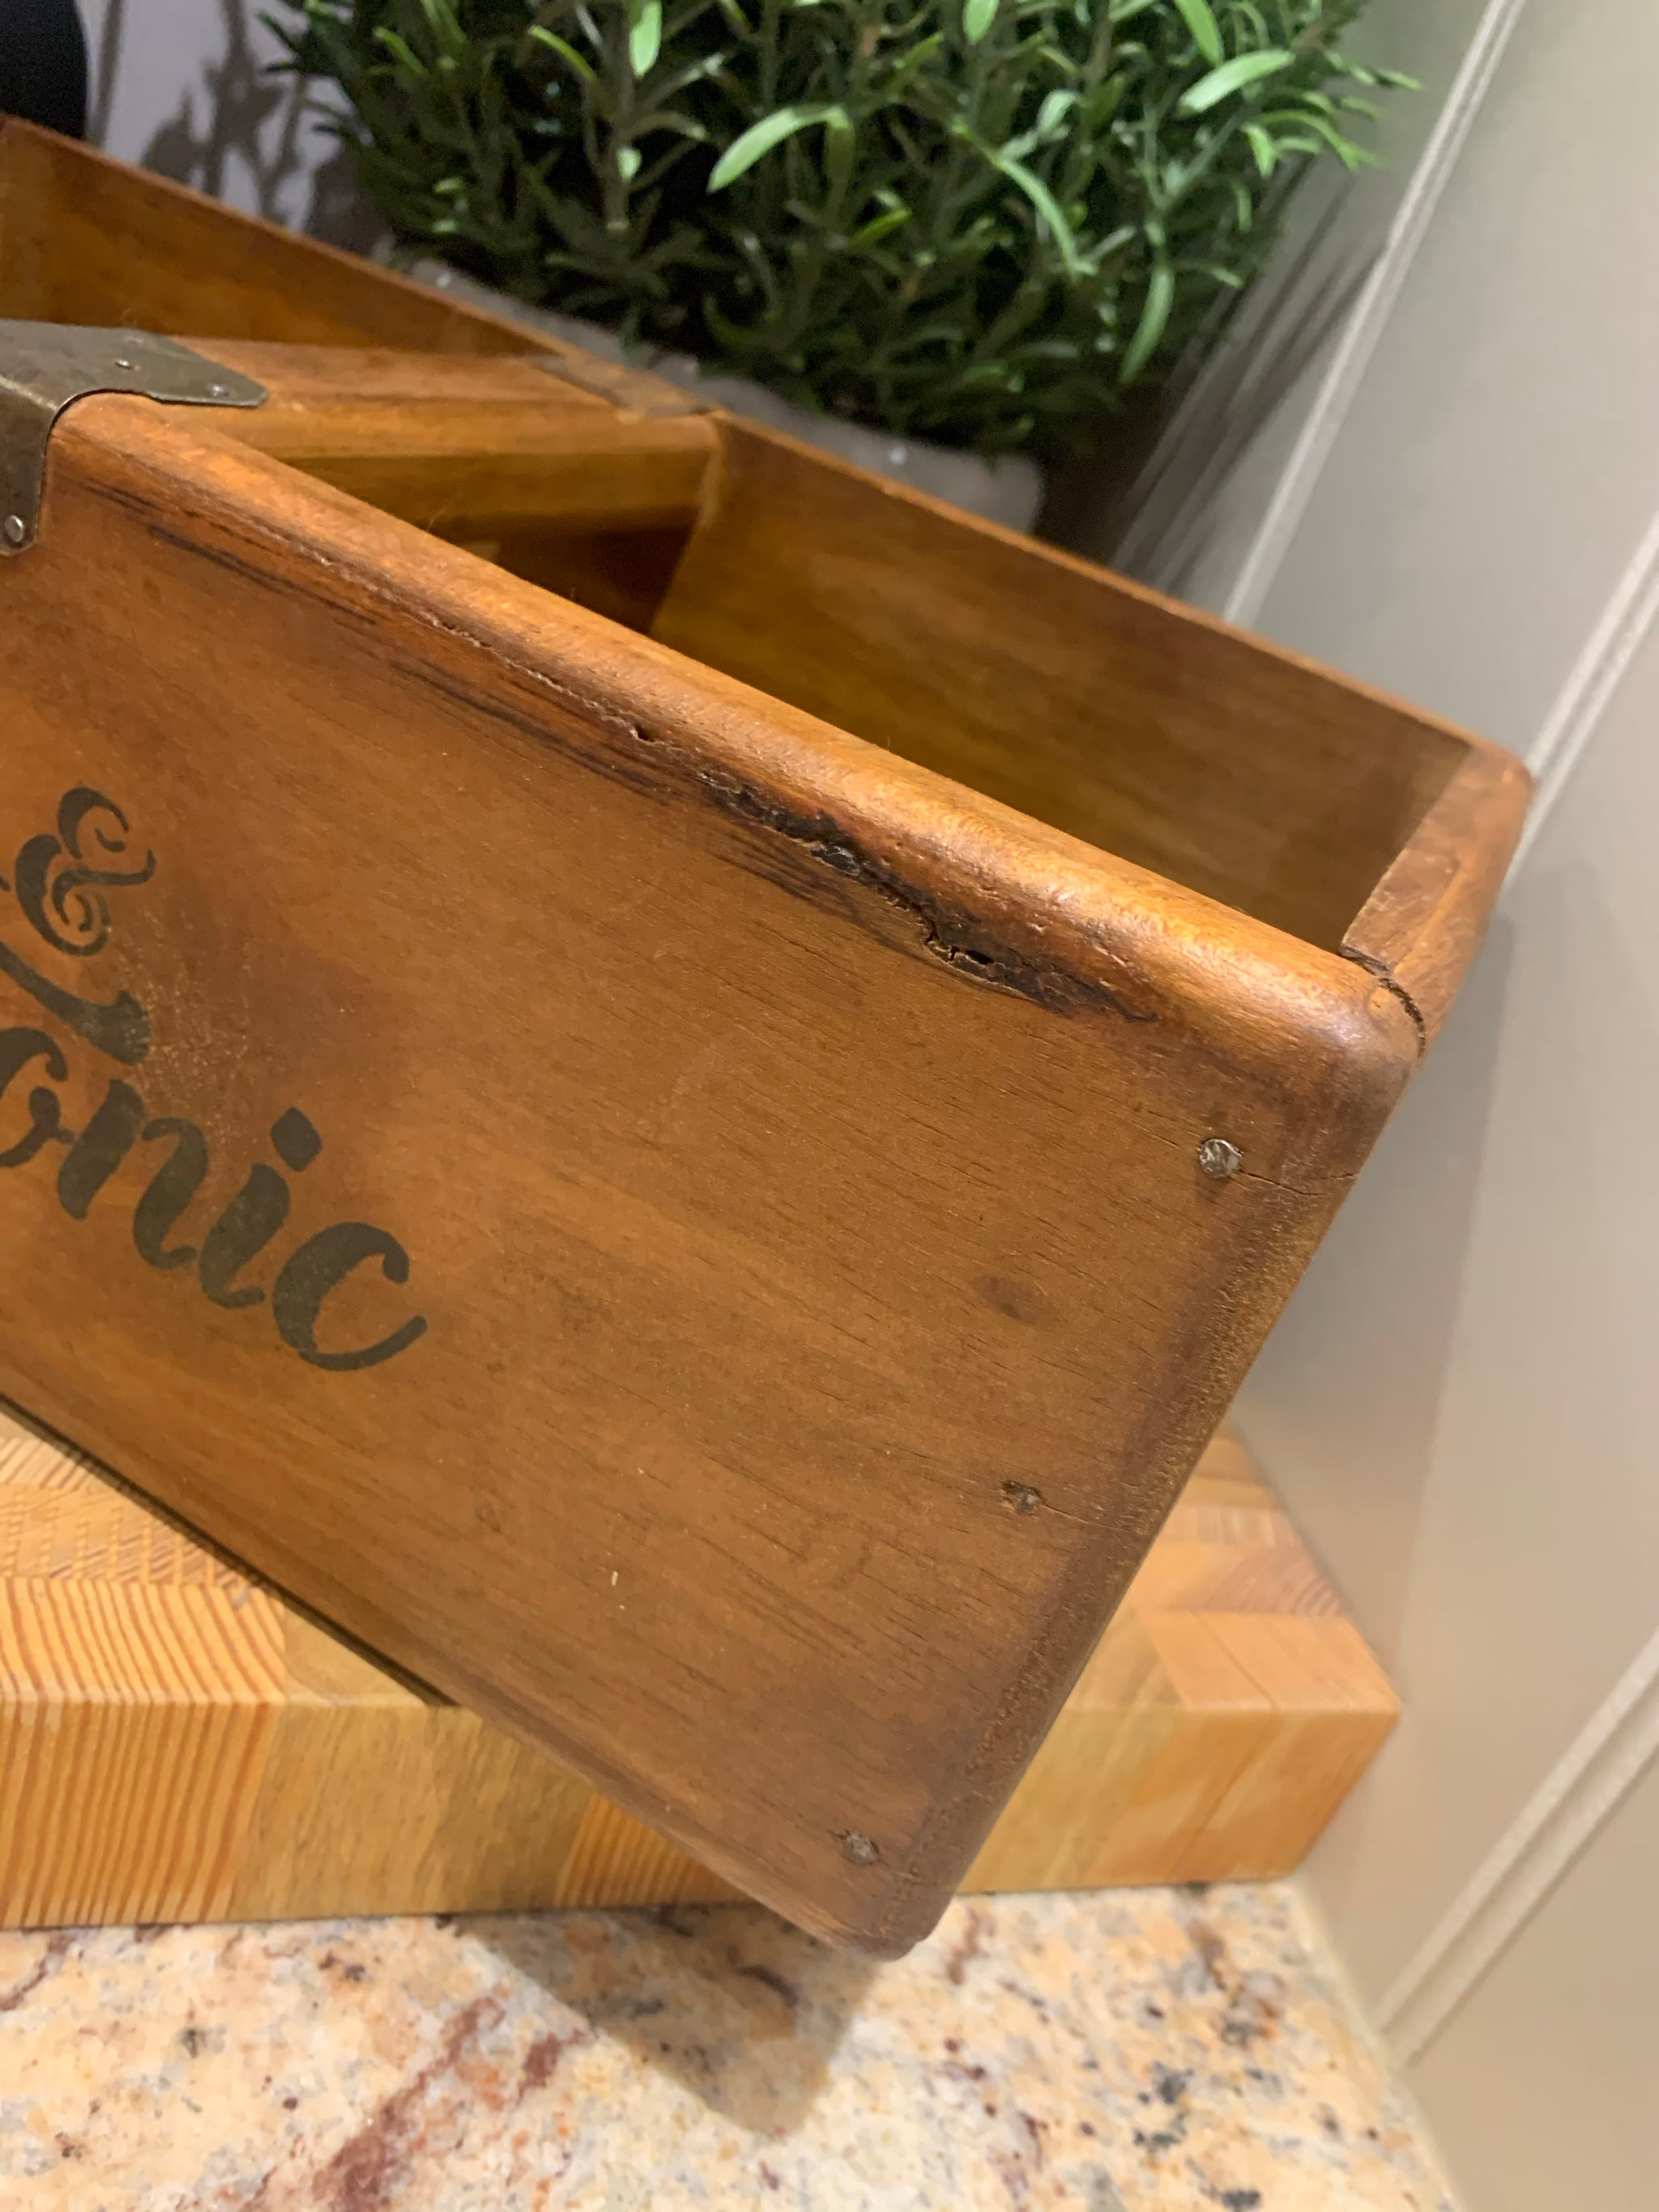 Wooden Gin & Tonic Box